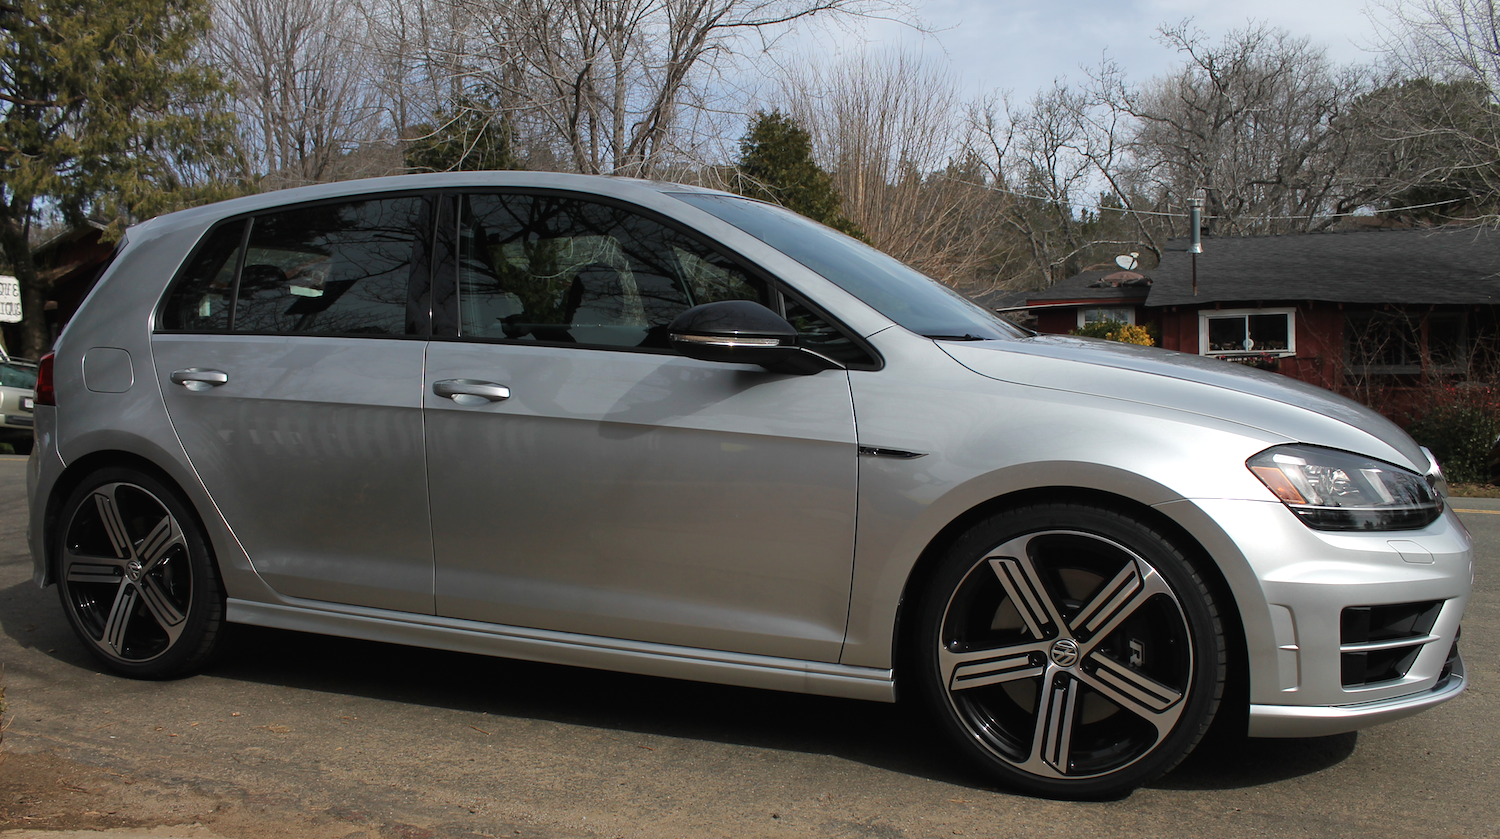 vws  volkswagen golf r sold out in hours but digital trends the first one silver